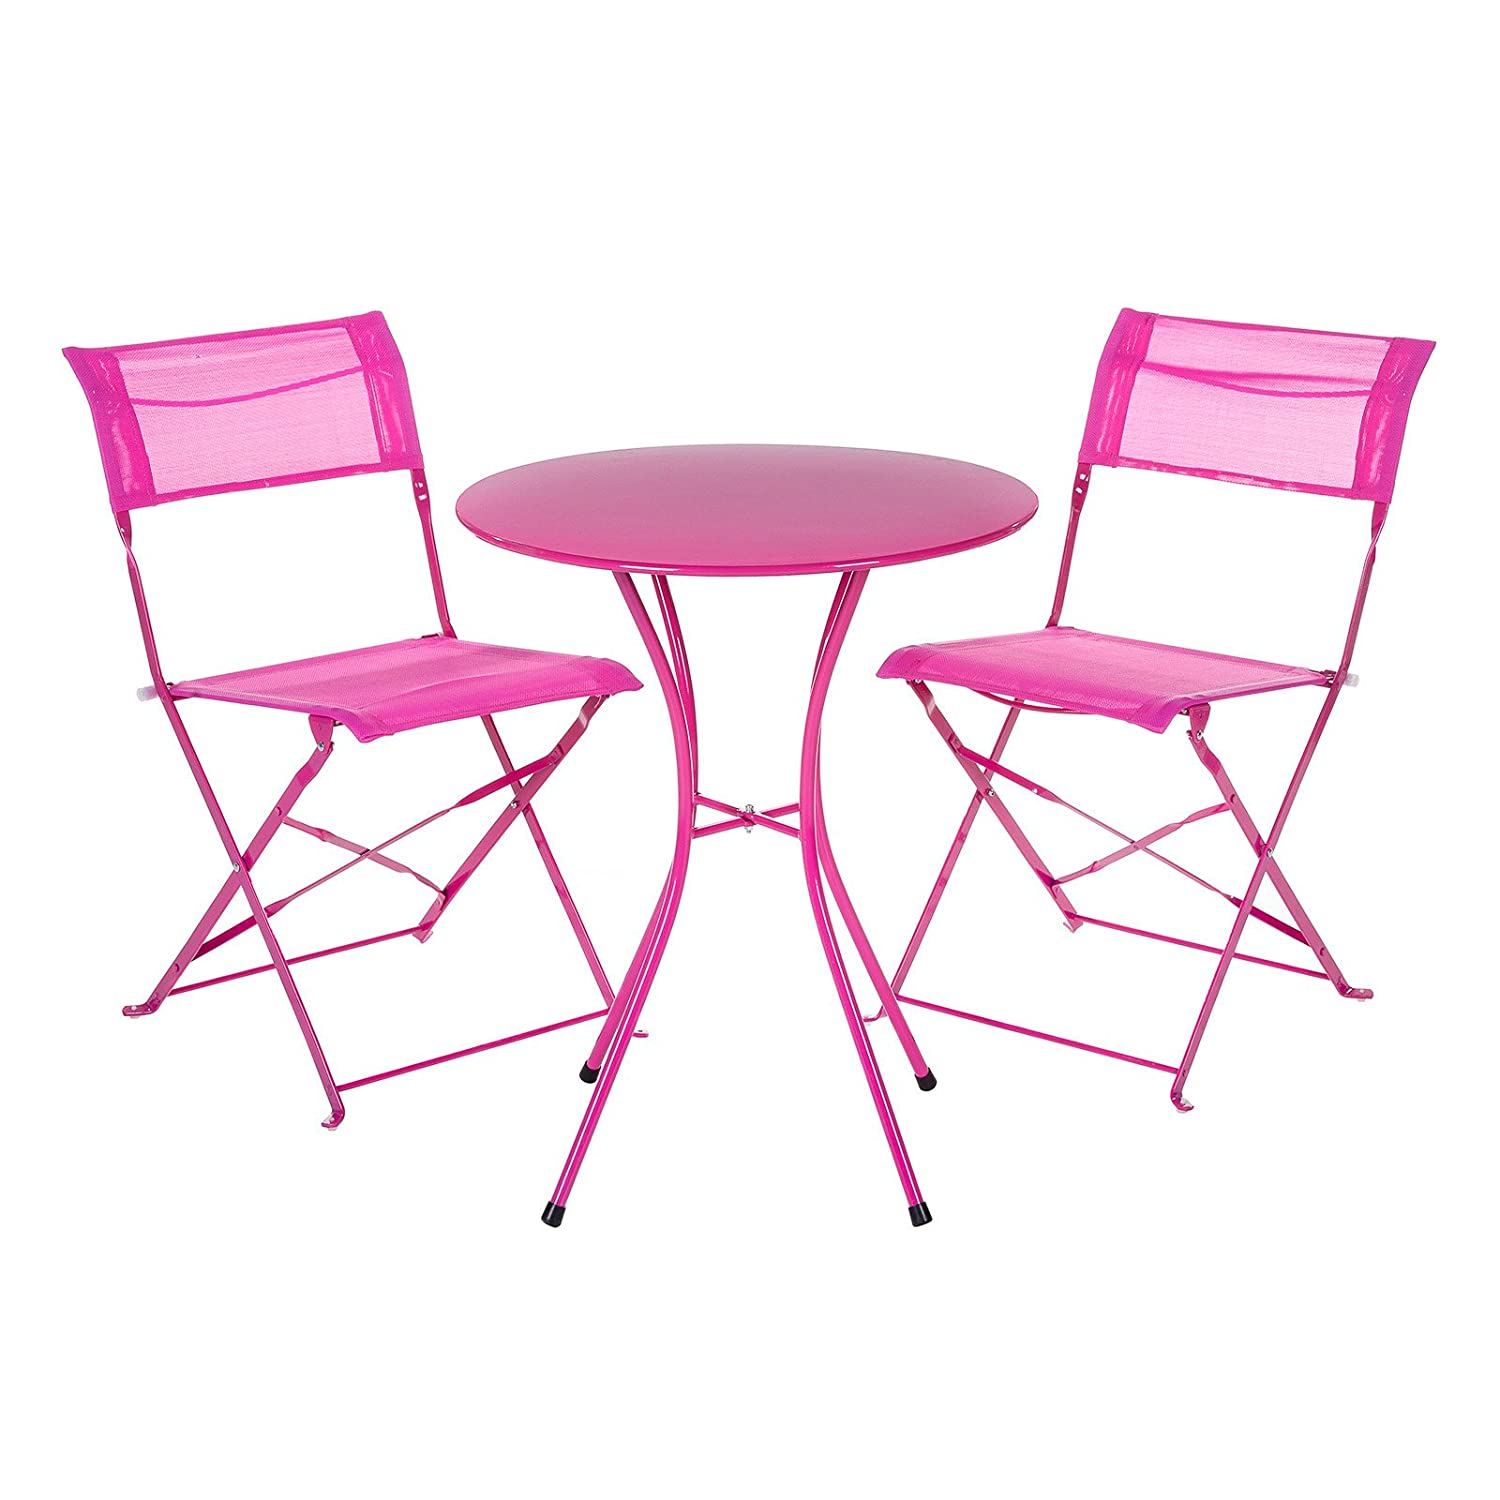 Garden table and chairs set metal bistro set for 2 folding for Fold up garden chairs